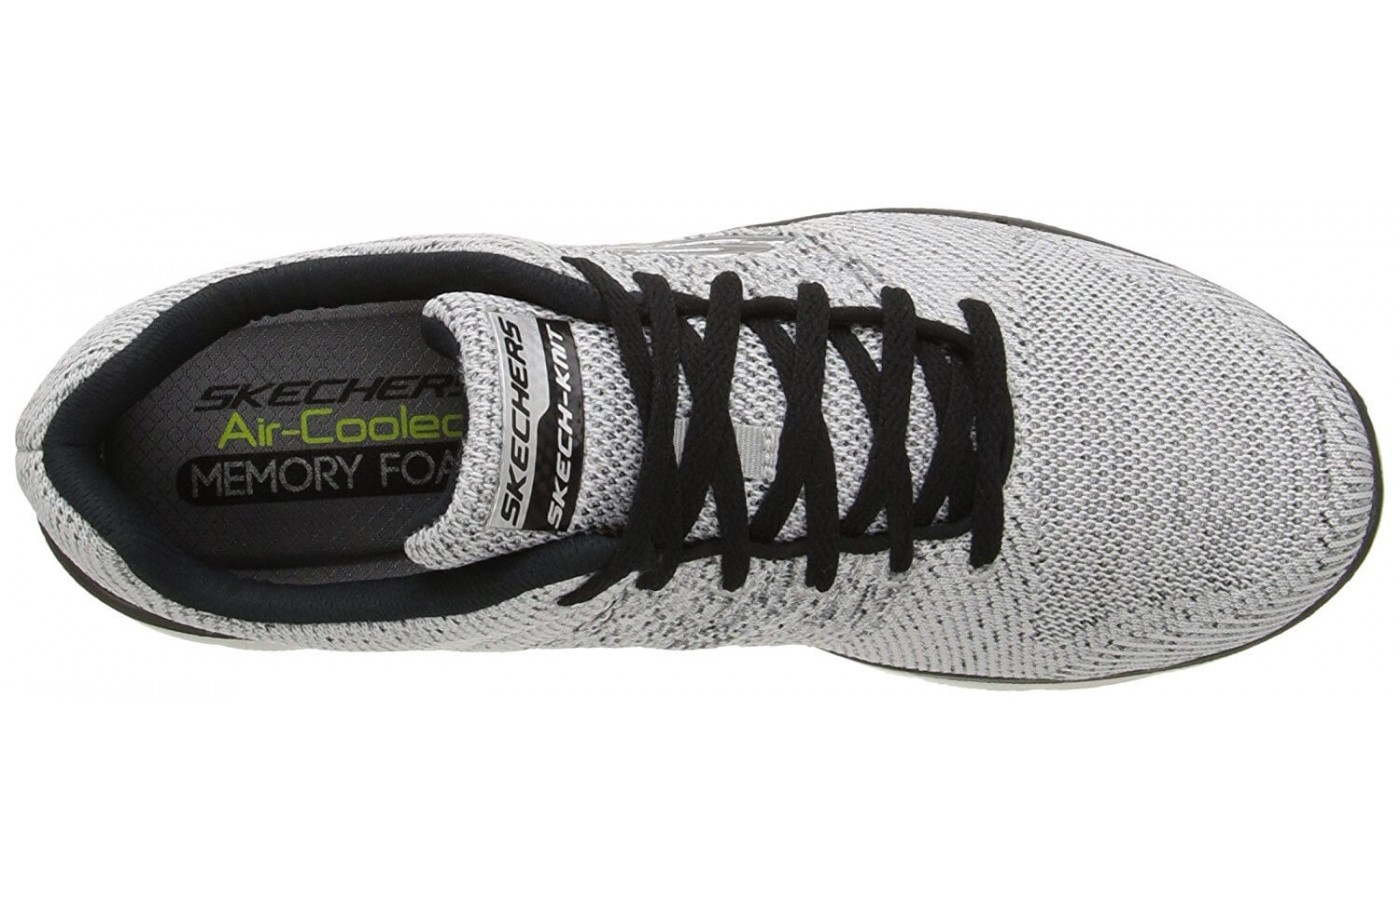 96d470cad2ad Skechers Flex Advantage 2.0 - To Buy or Not in Apr 2019